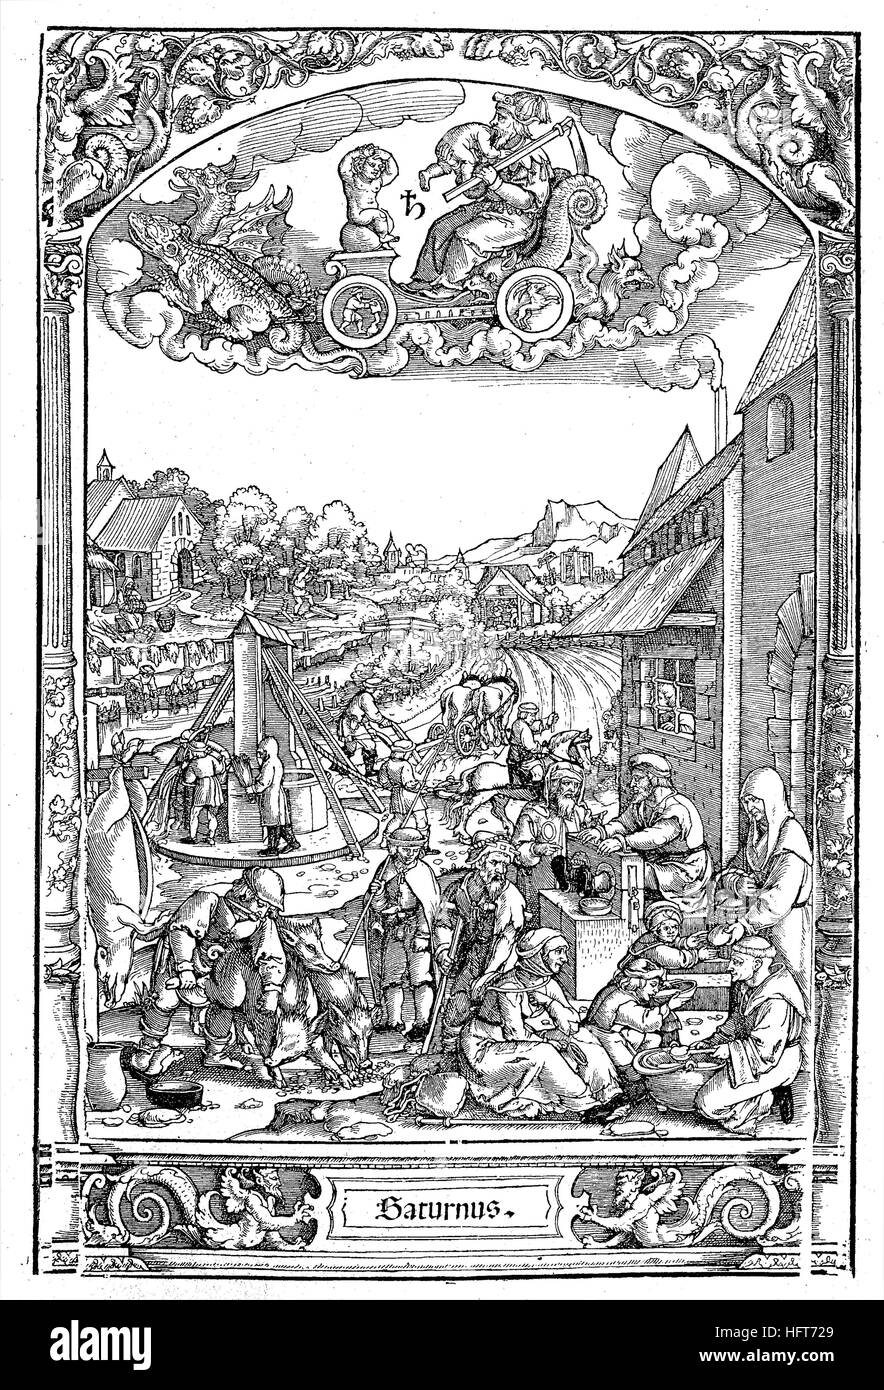 German country life around 1550, view of the different professions and works, woodcut from the year 1885, digital - Stock Image